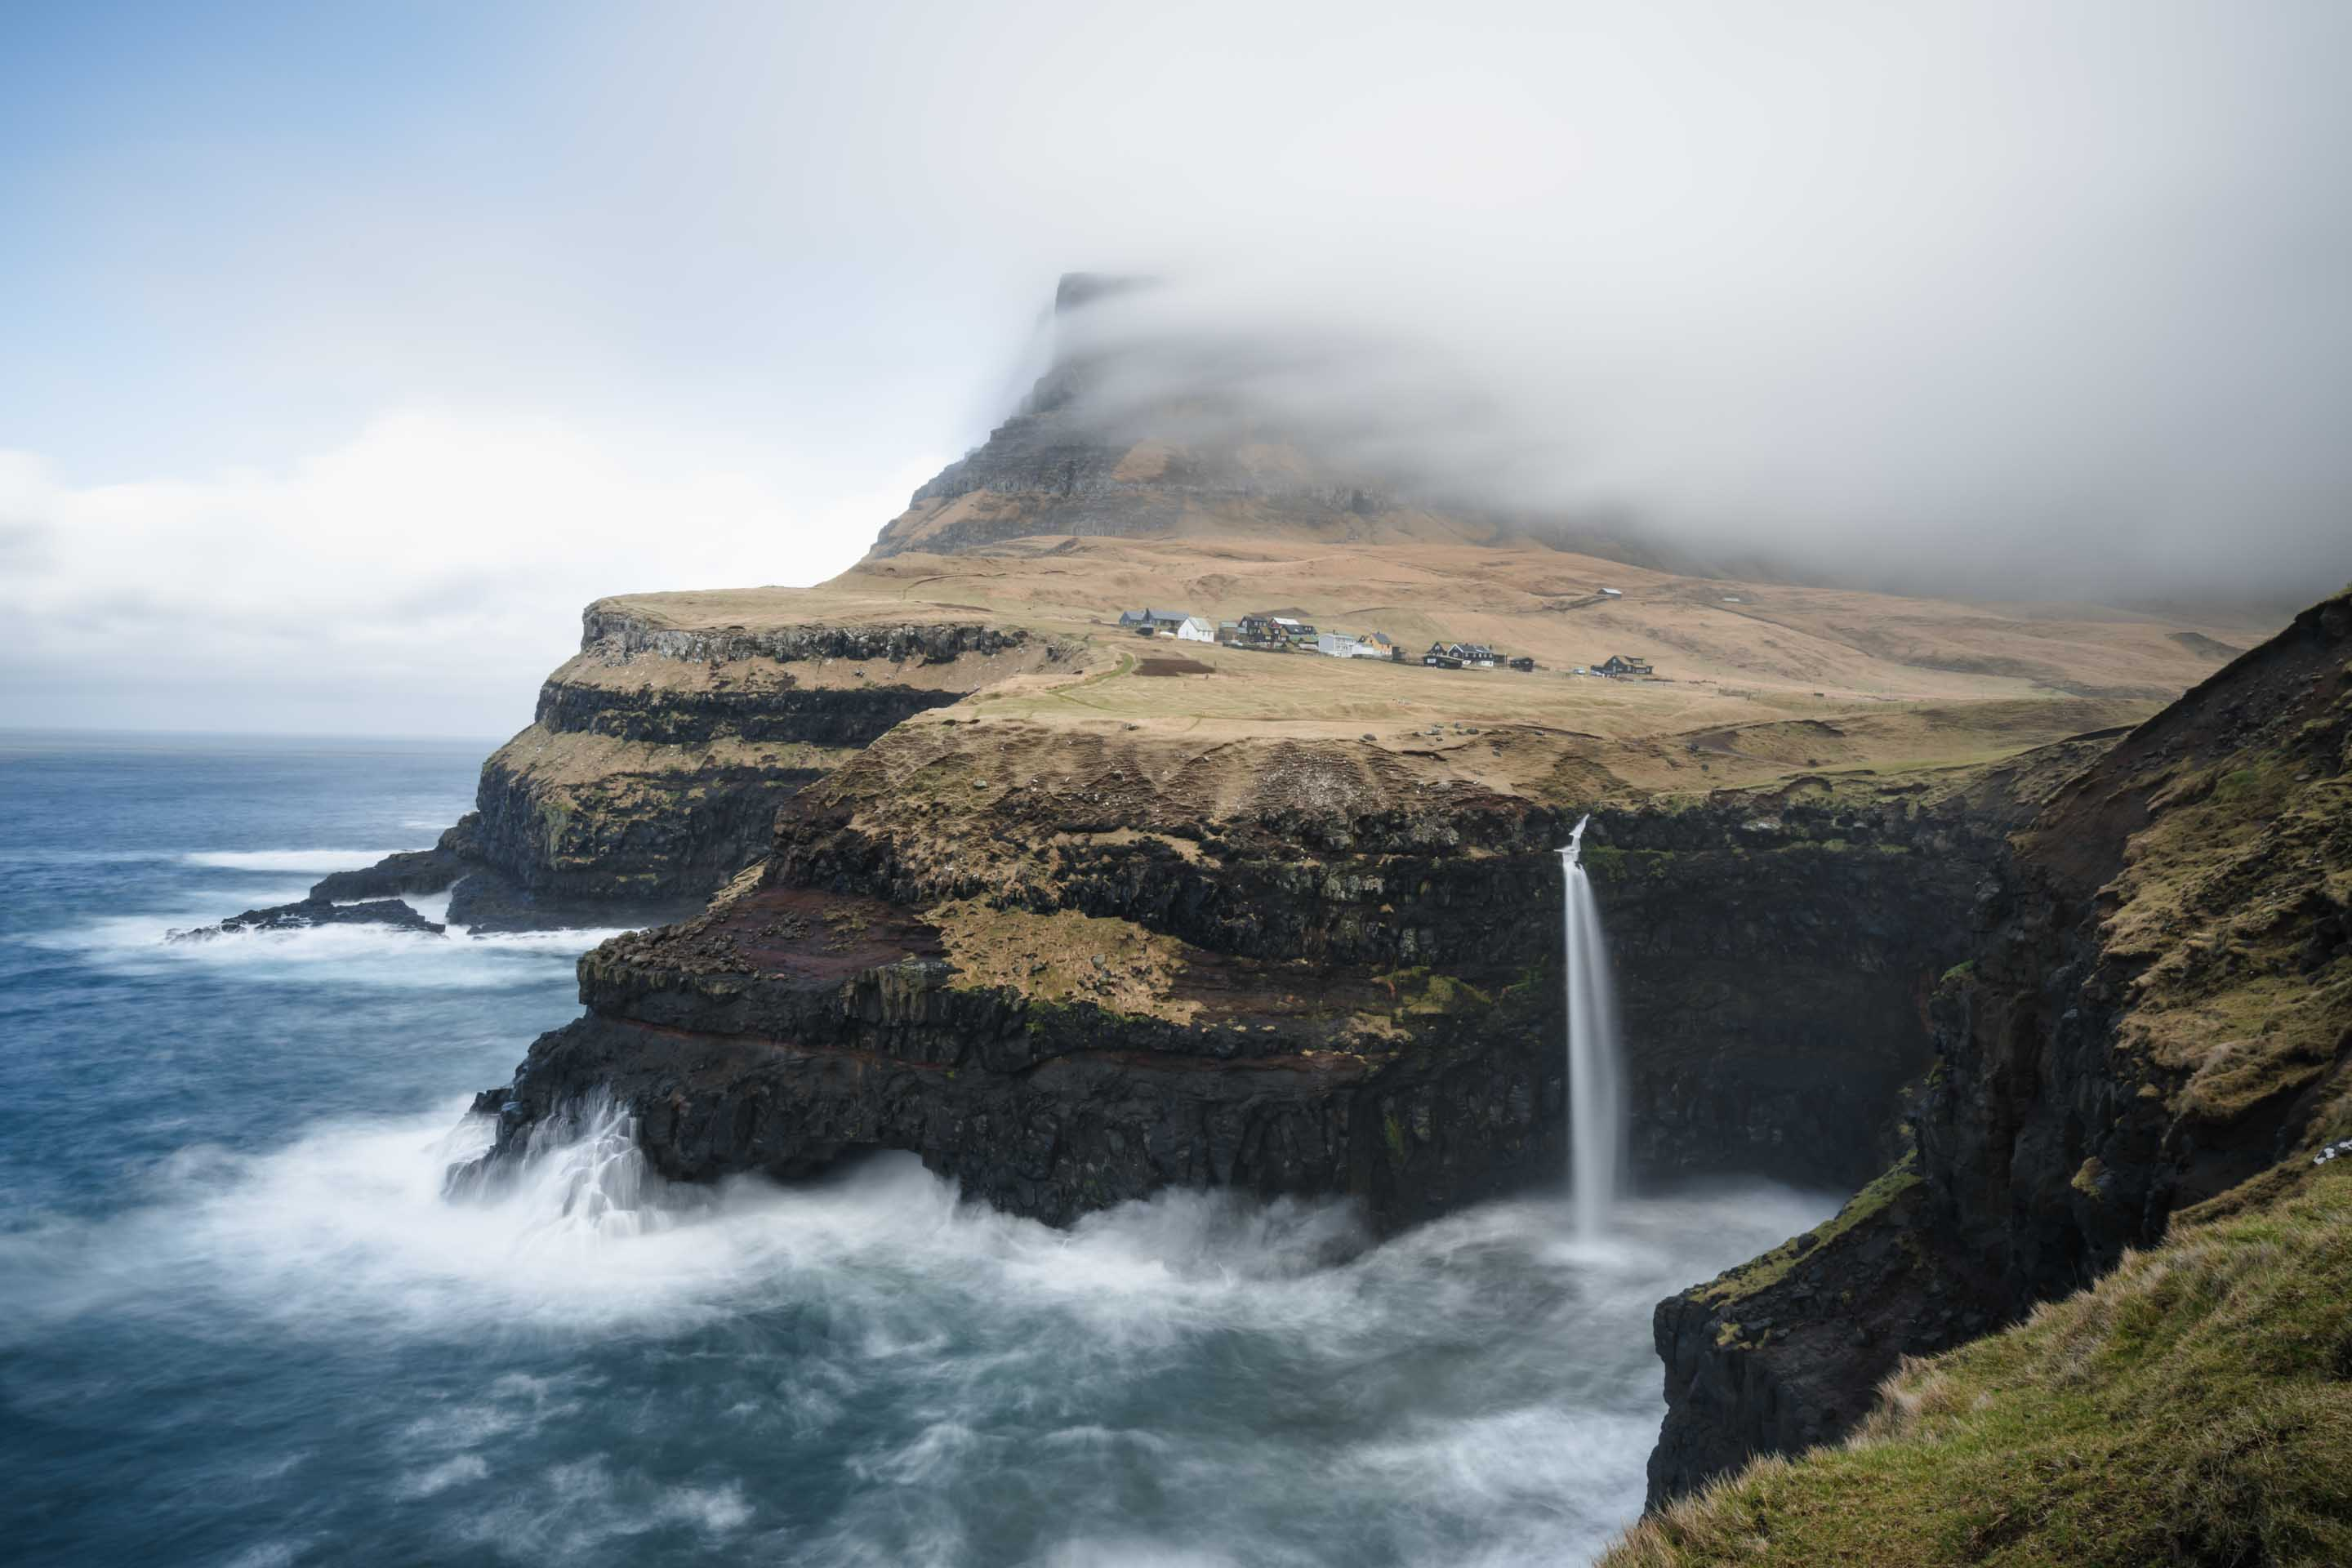 Easily one of the most photographed locations in the Faroe Islands, the Mulafossur waterfall plunges into the sea. Directly behind the waterfall is the small village, Gasadalur, and beyond it a large mountain. The scene is stunning, especially with dramatic ocean weather.